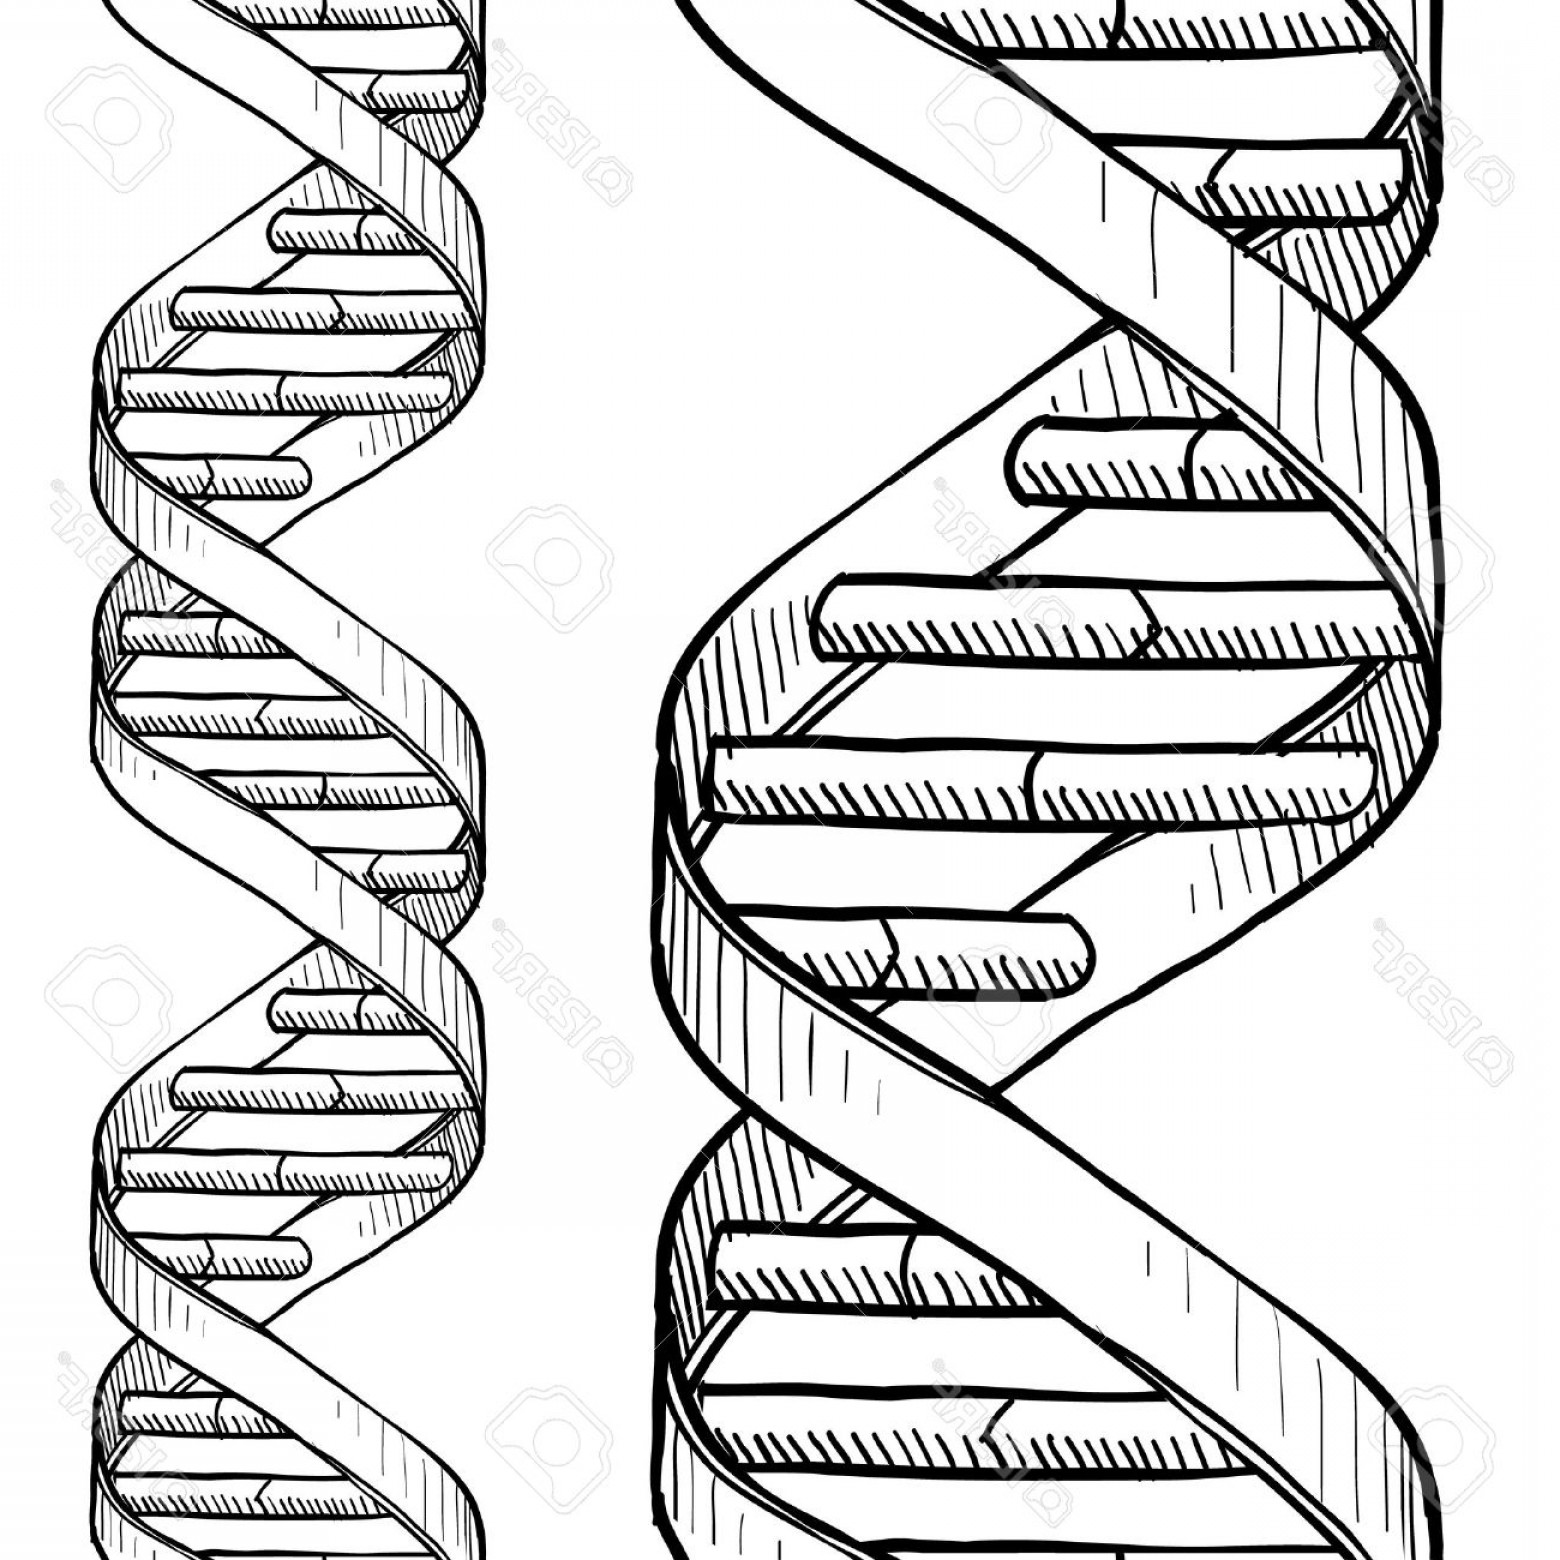 Zsksydny Coloring Pages 33 Dna The Double Helix Coloring